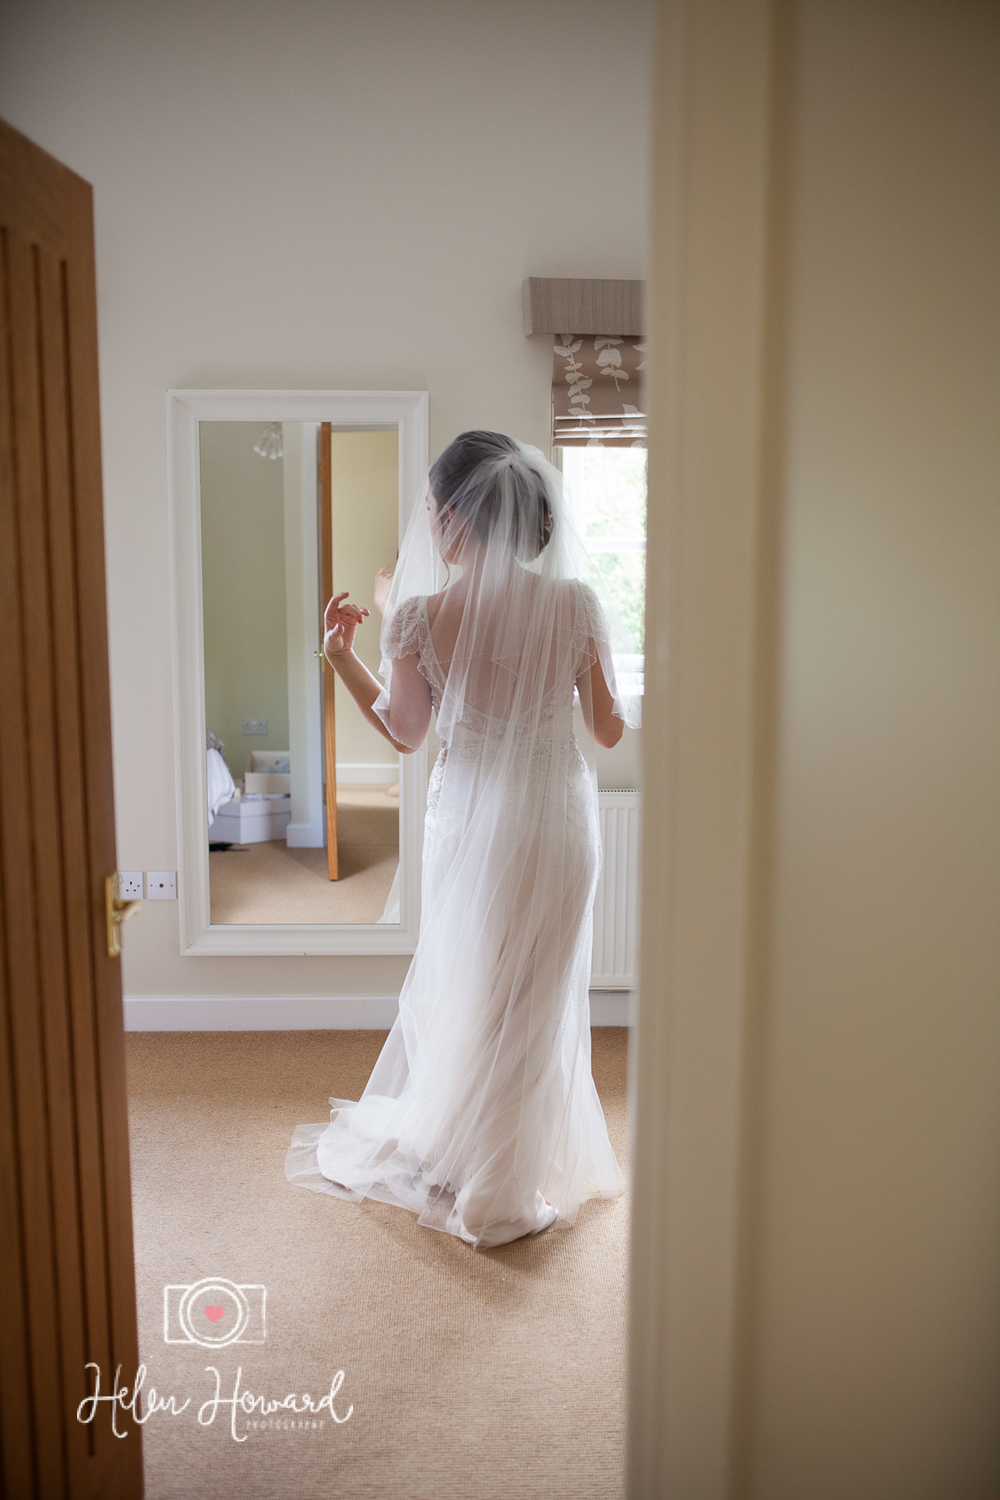 Helen Howard Photography Packington Moor Wedding-48.jpg